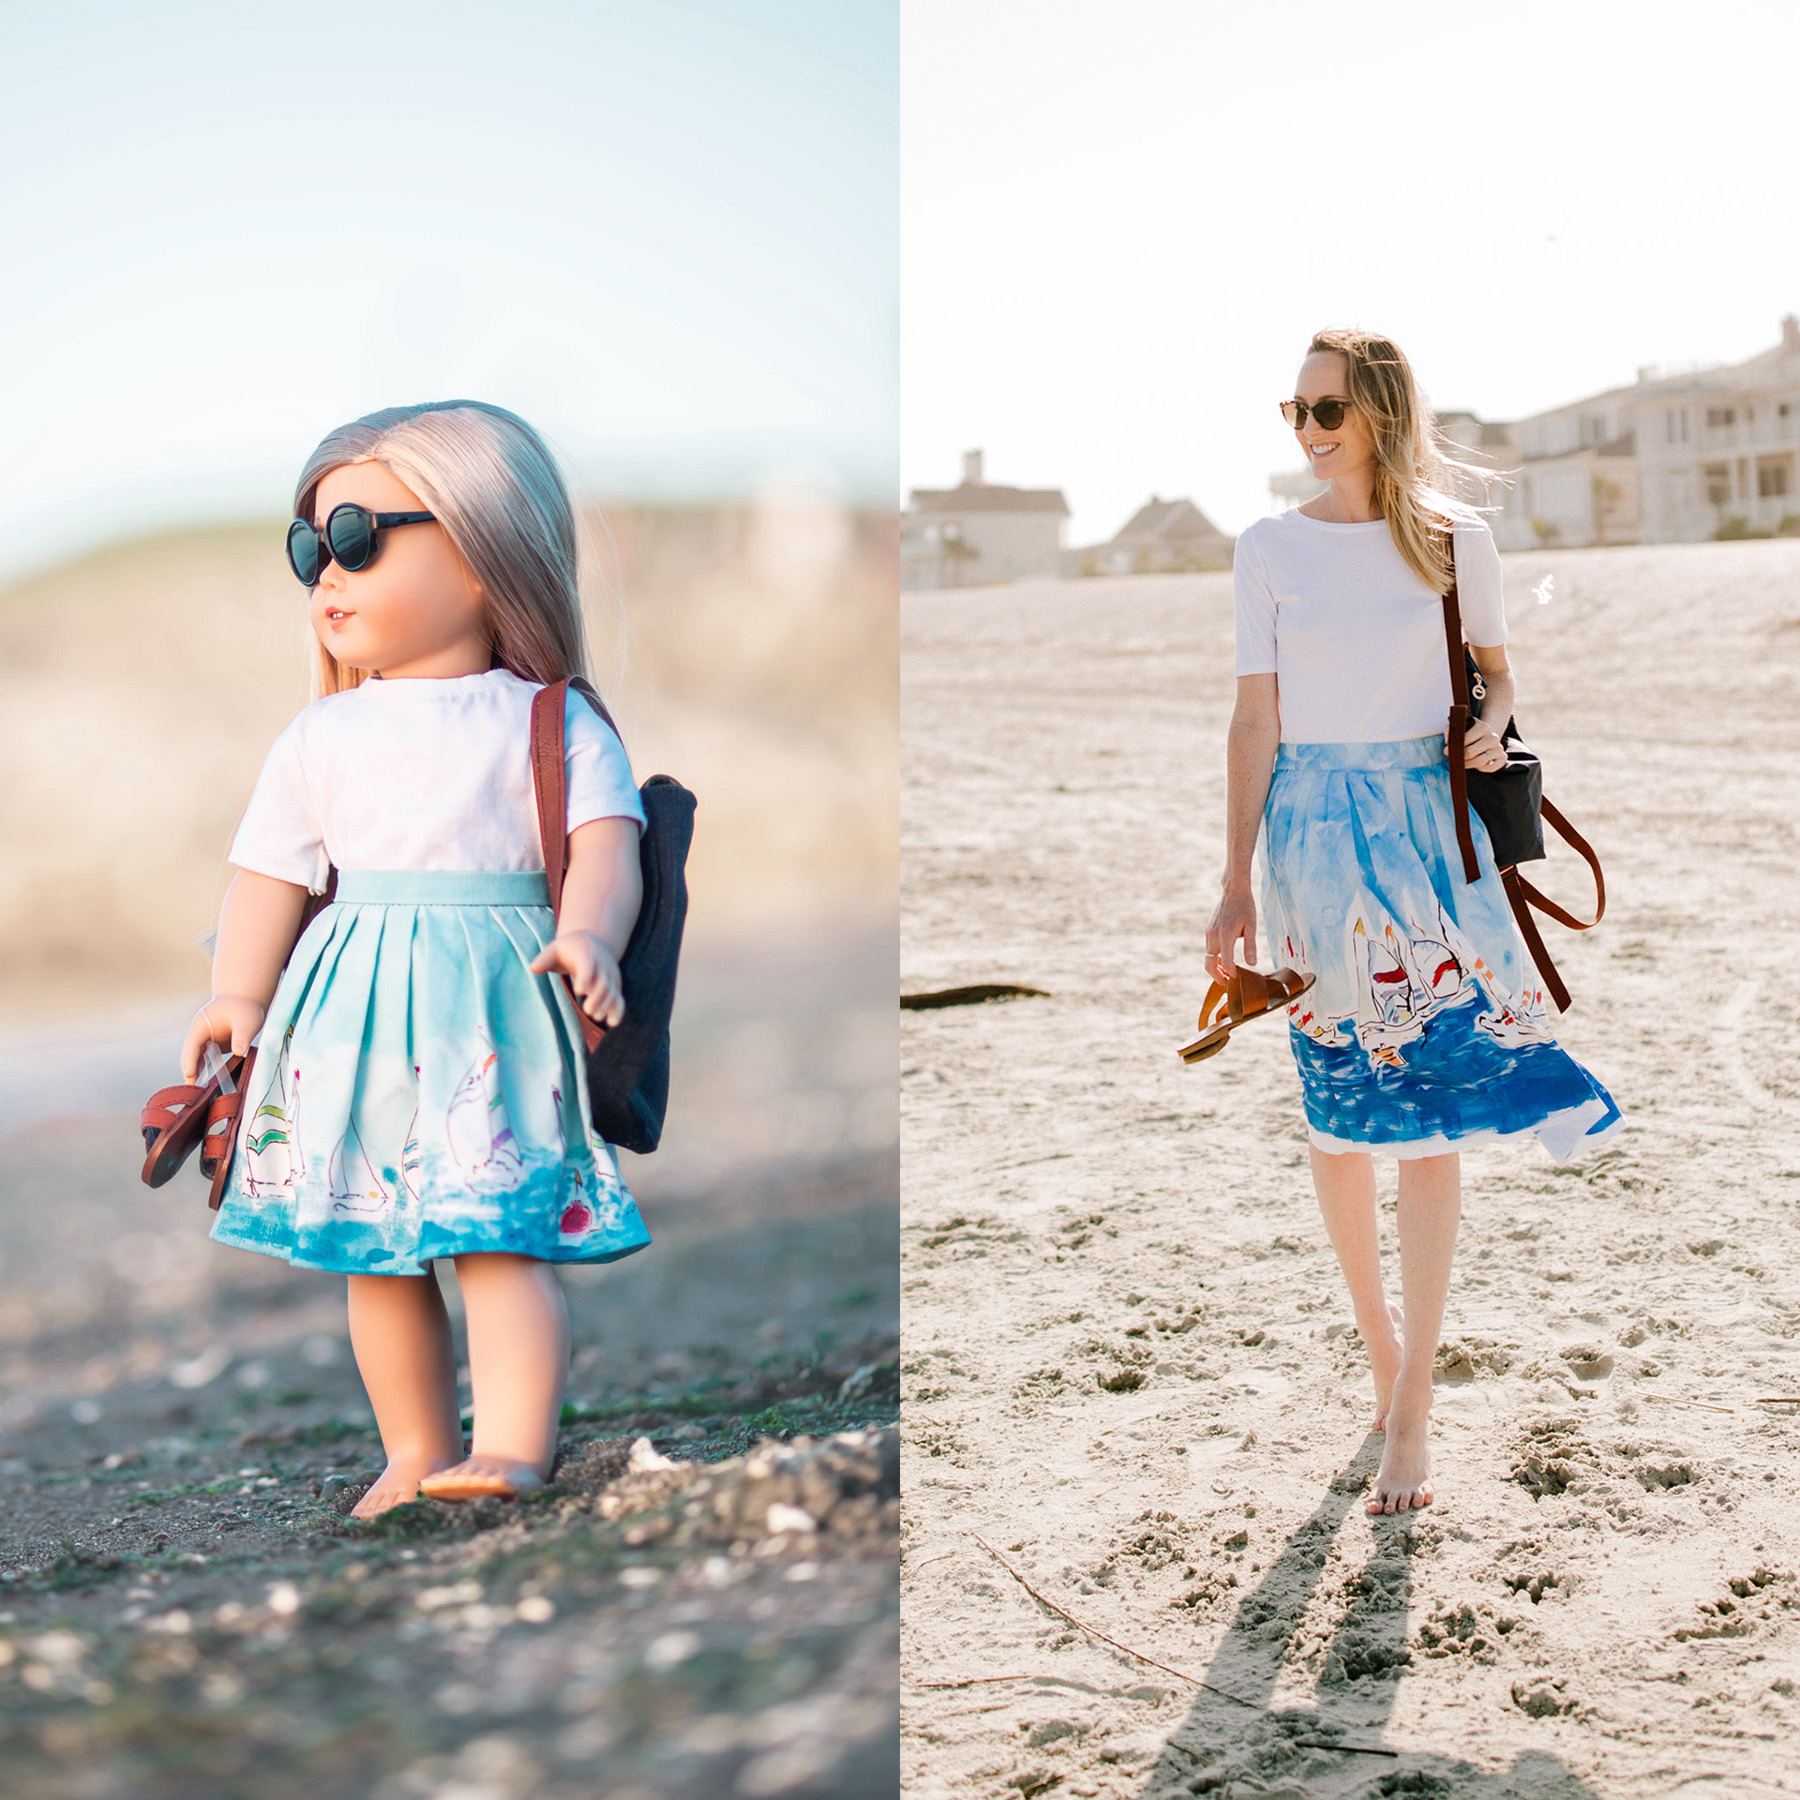 American Girl Dolls Come to Life